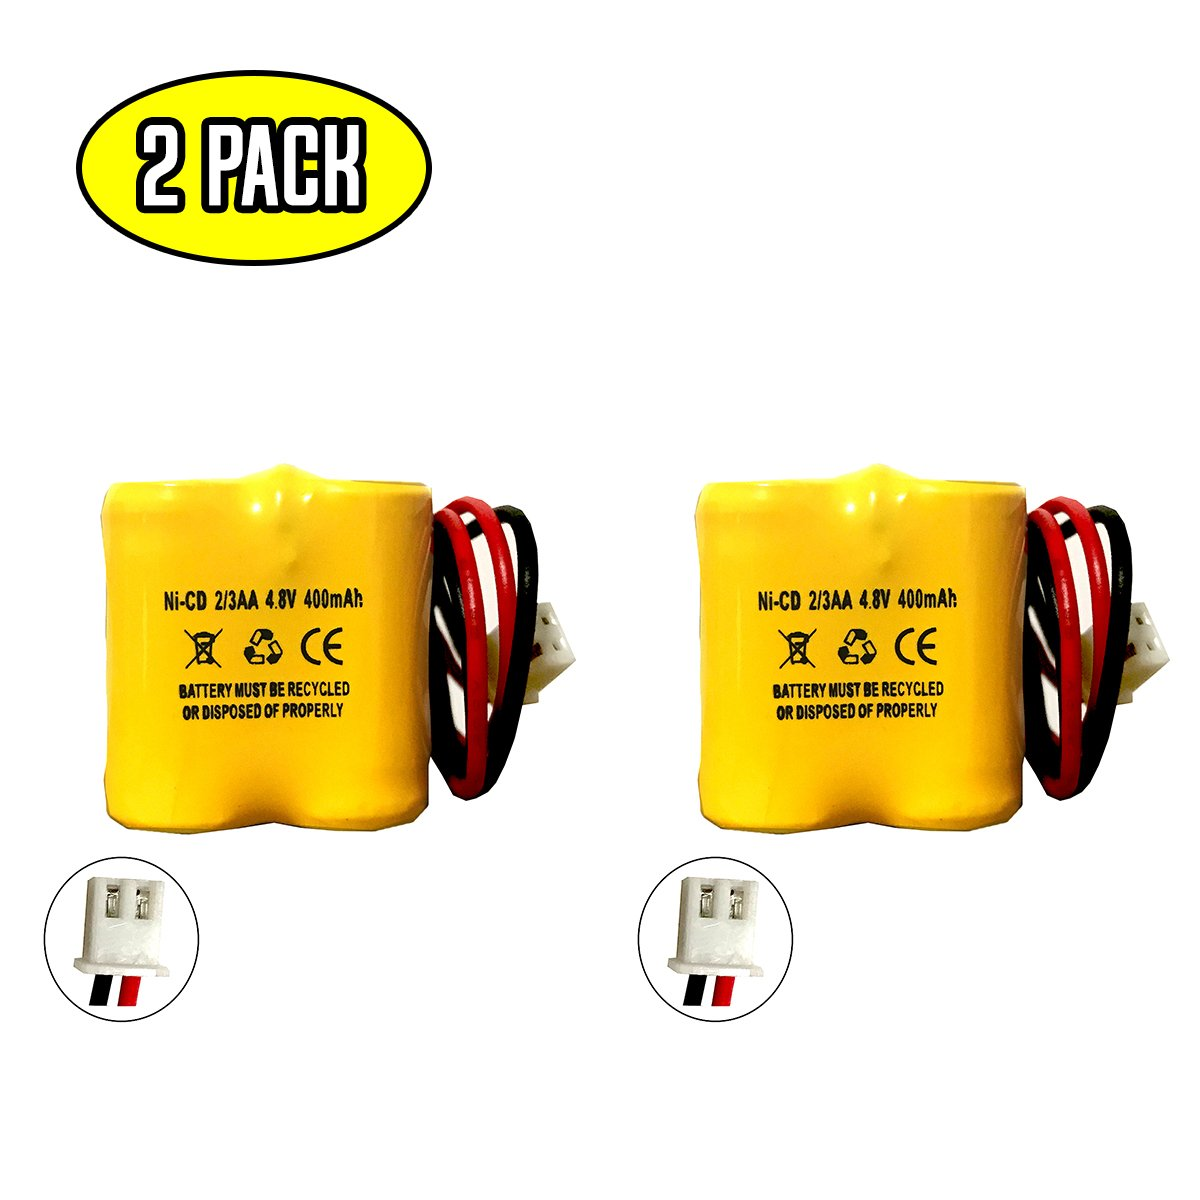 MK Power MH29673 4.8v 400mAh Battery Replacement Exit Sign Emergency Light NiCad BST Battery D-2/3AA400MAH Lithonia BL93NC484 Nickel Cadmium